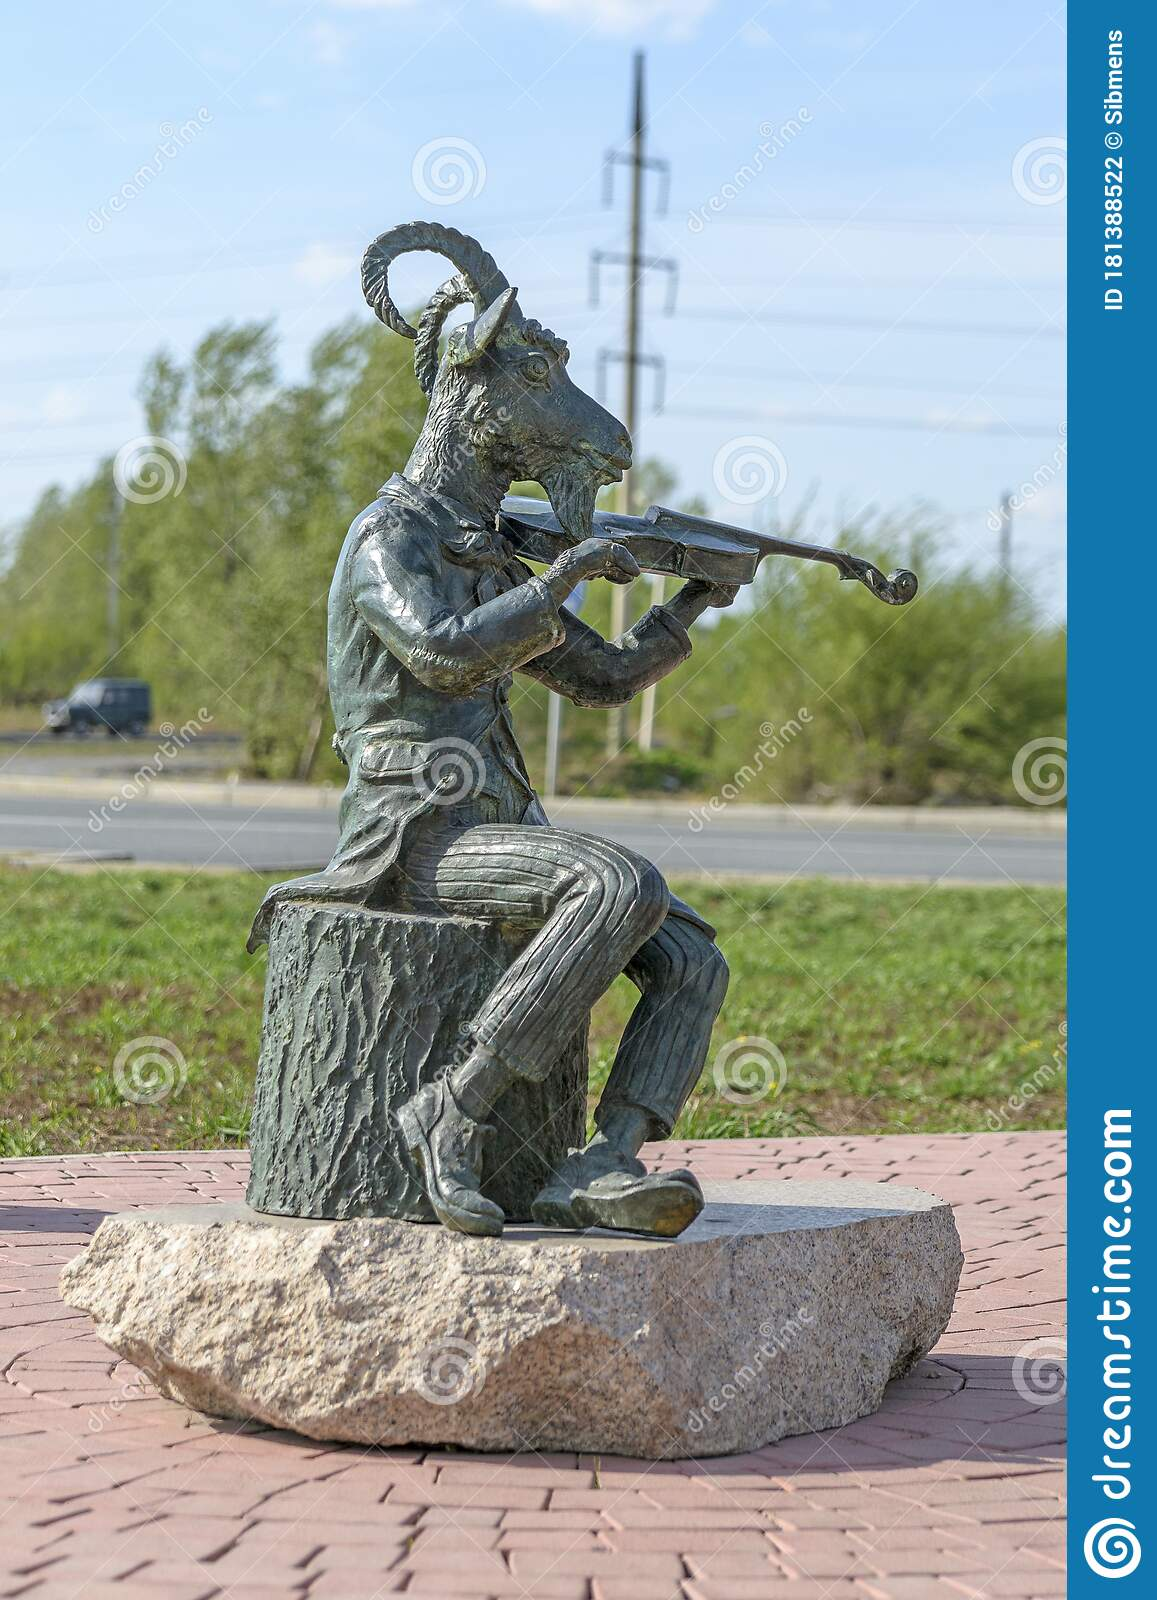 Abakan Russia 05 02 2020 Bronze Monument A Goat Dressed In A Tailcoat Plays The Violin While Sitting On A Stump Stock Photo Image Of Cute Garden 181388522